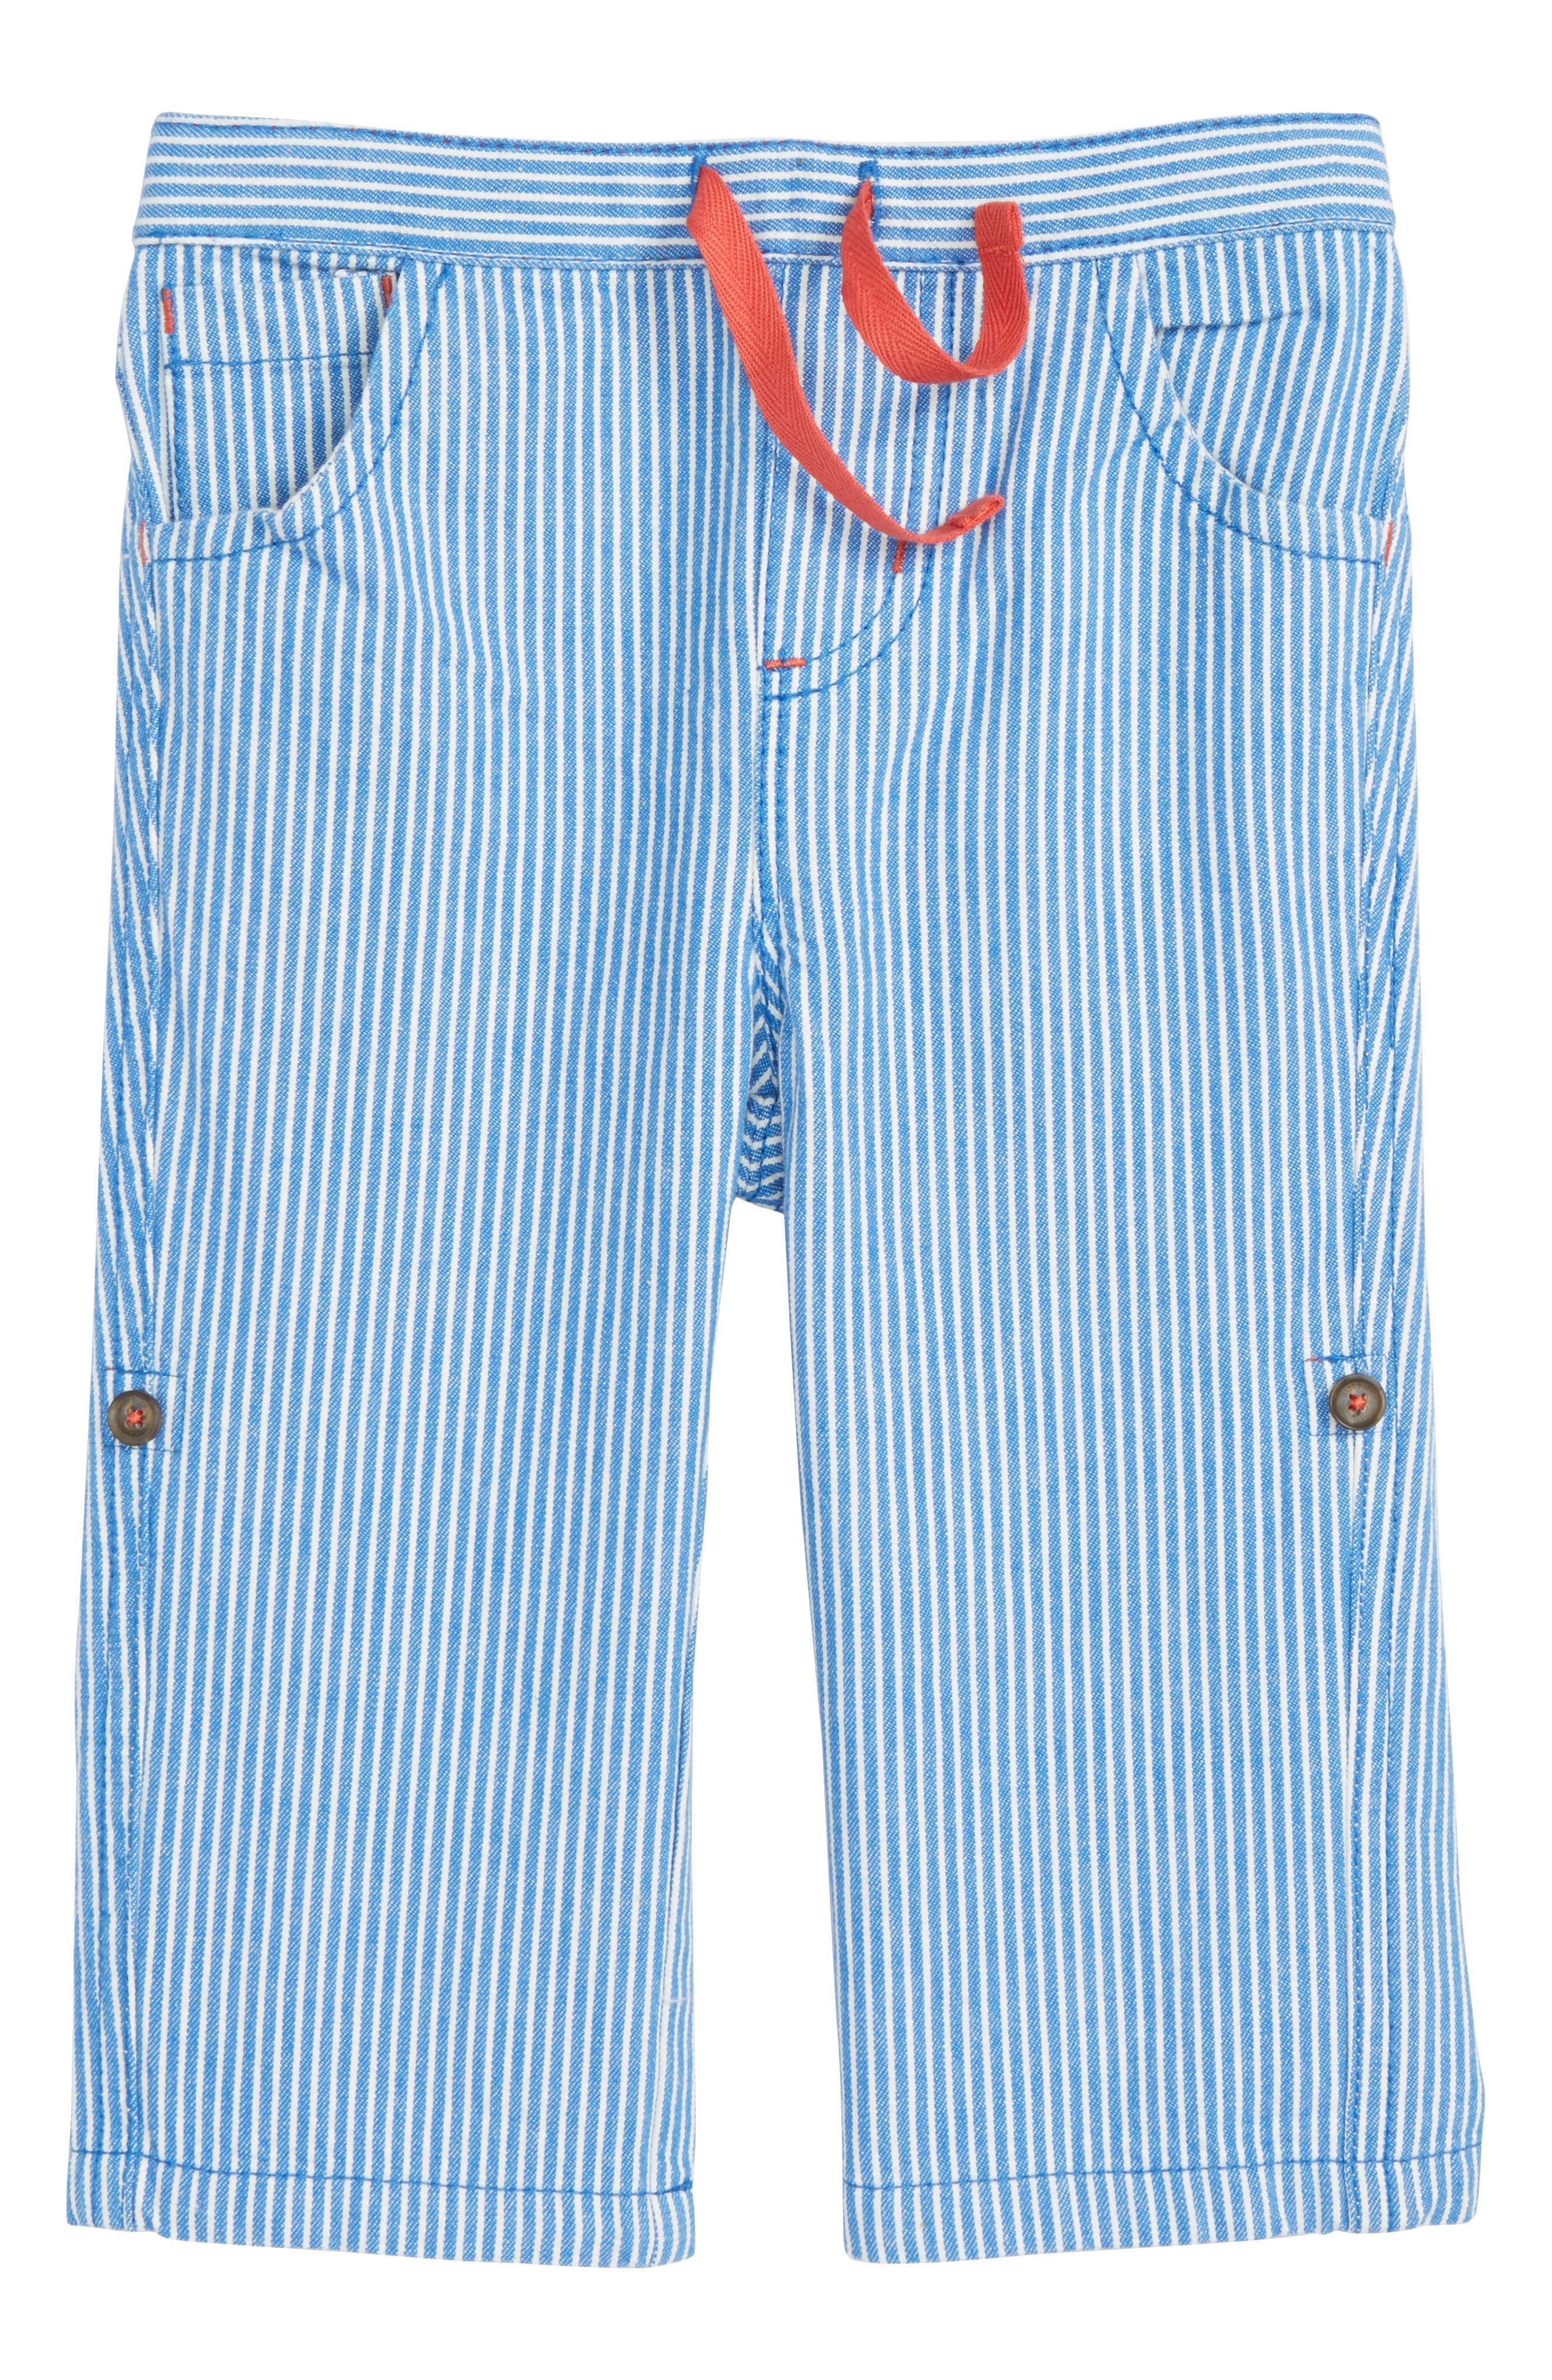 Roll-Up Pants,                         Main,                         color, Skipper Ticking Strip